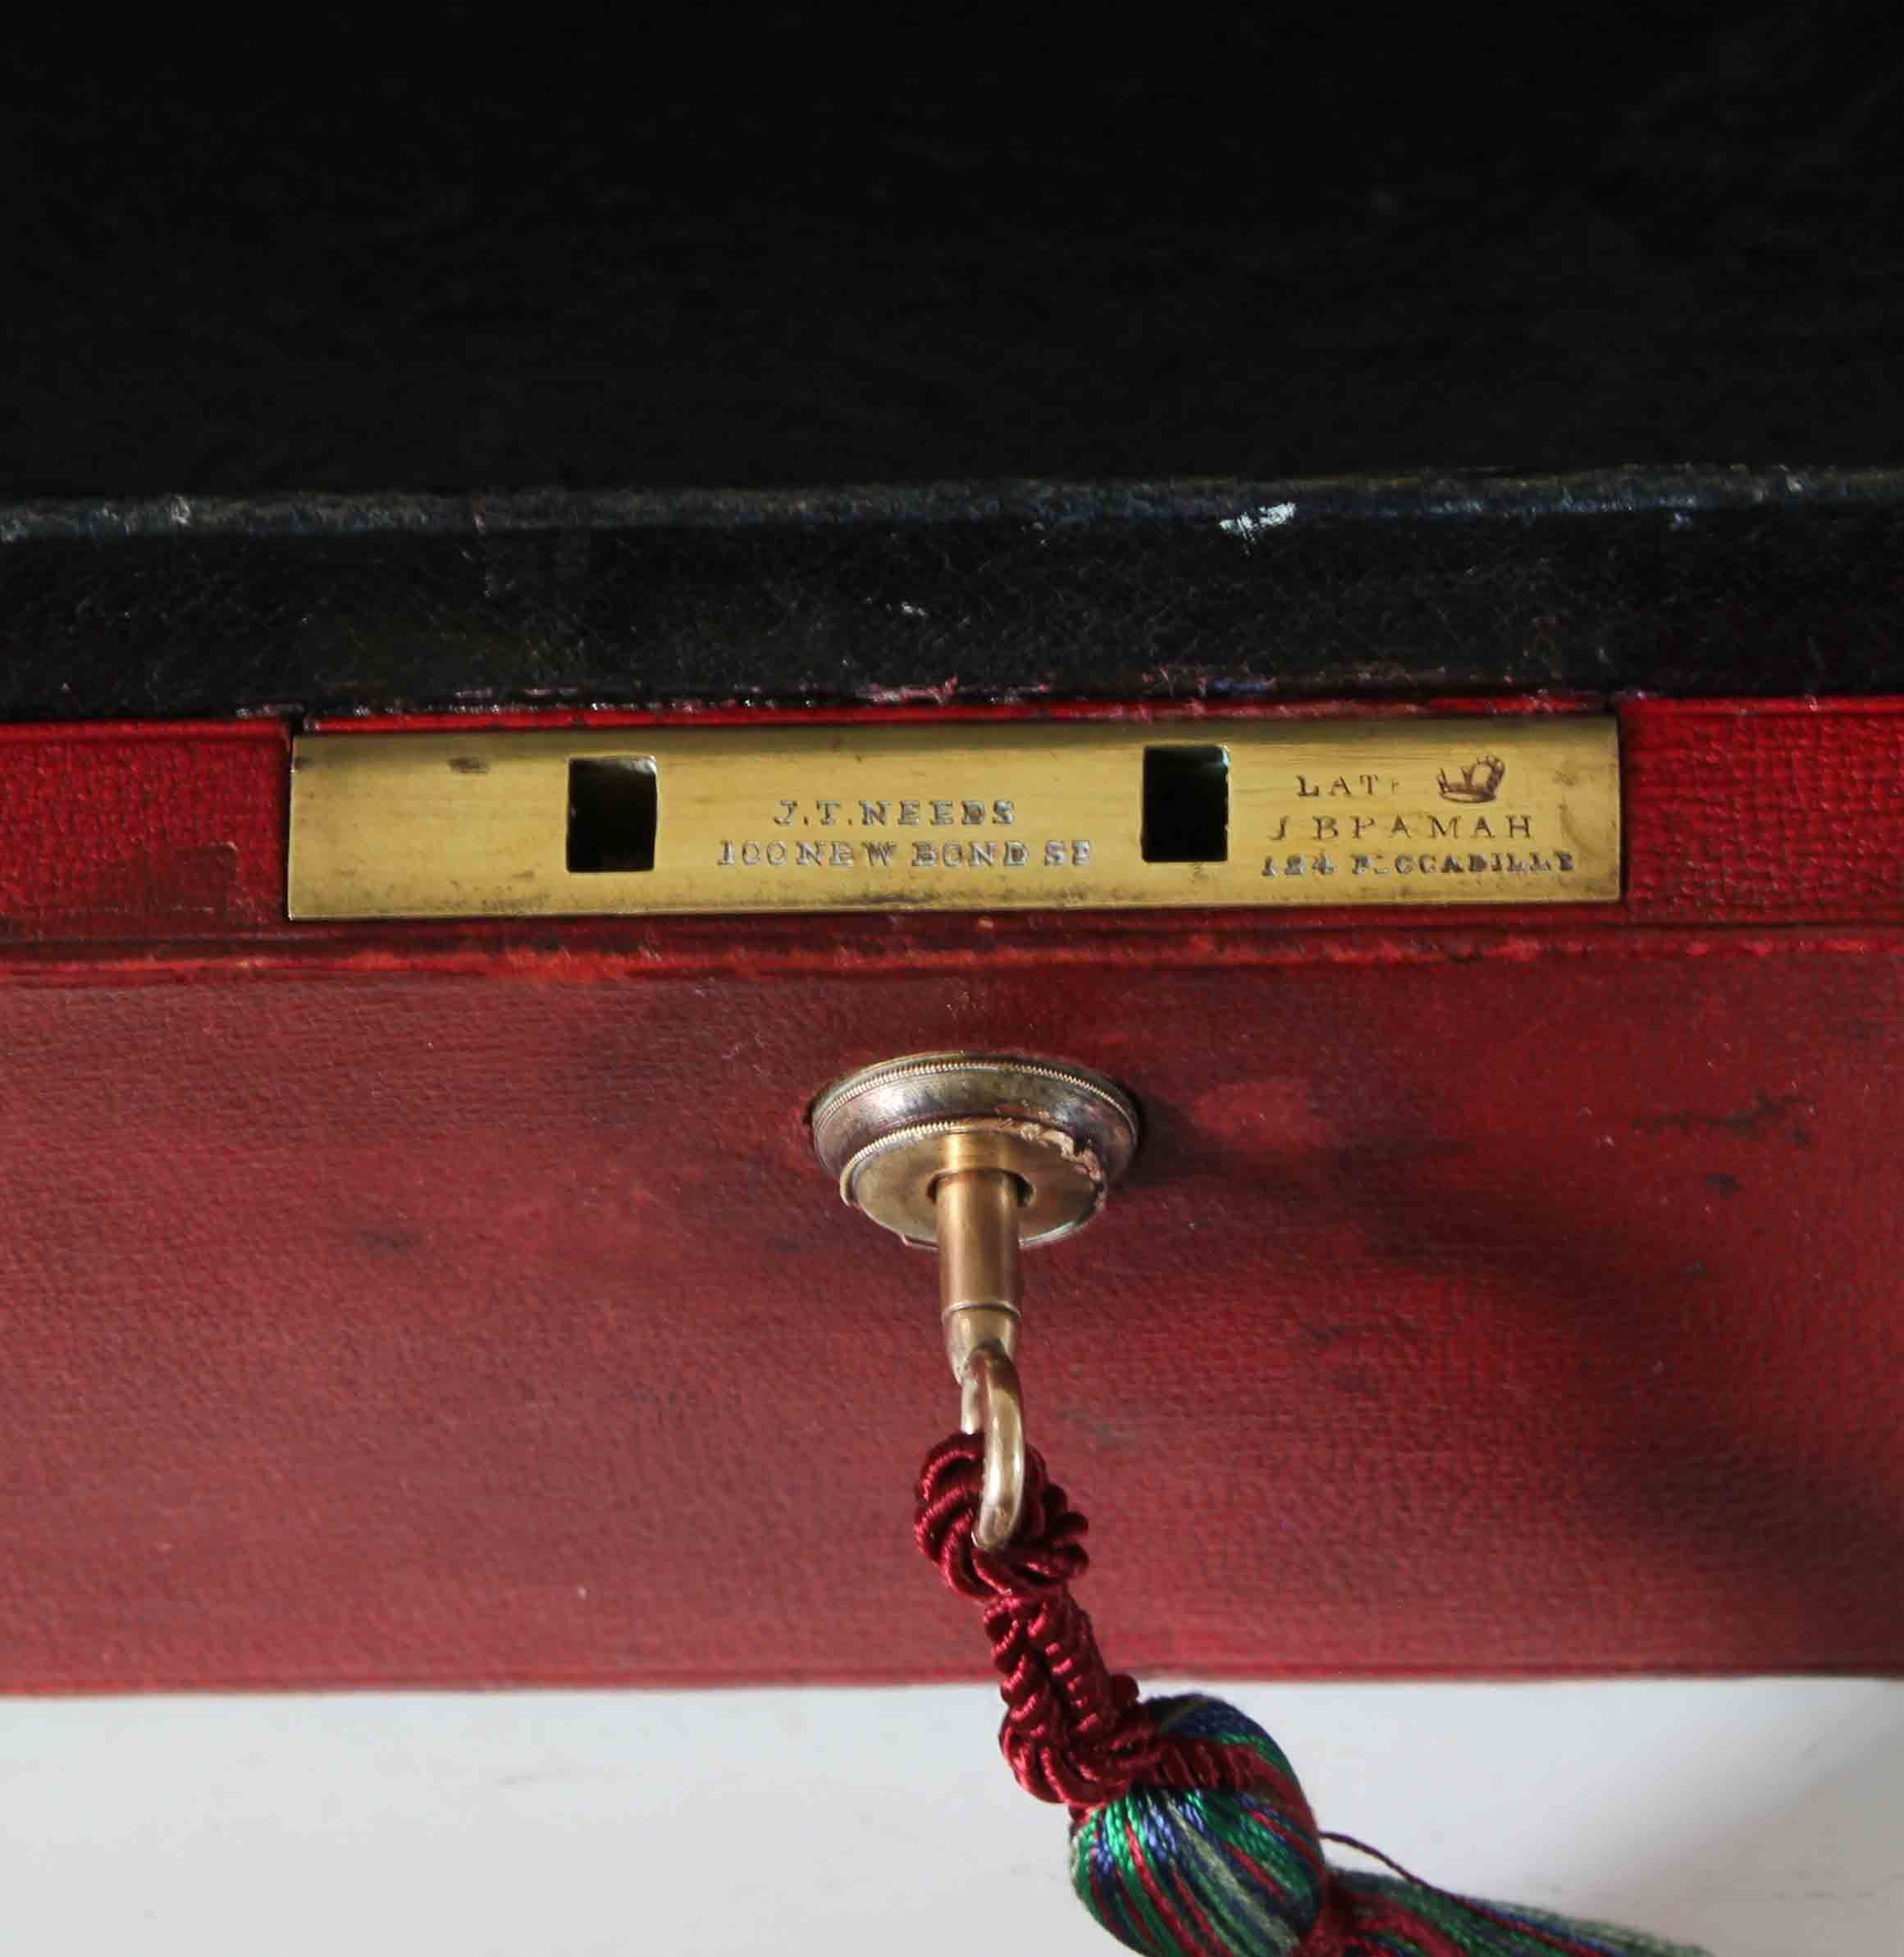 A full size Victorian Red Leather Despatch Box, originally the property of Sir Walter Wragg. KT.DCL.*. The lid with a recessed brass drop handle, the black Morocco leather interior with crossed leather strips inside the lid for holding memoranda etc. The working lock with key stamped with the Royal Crown, and J.T. NEEDS 100 NEW BOND ST., LATE J. BRAMAH 184 PICCADILLY. #despatchbox